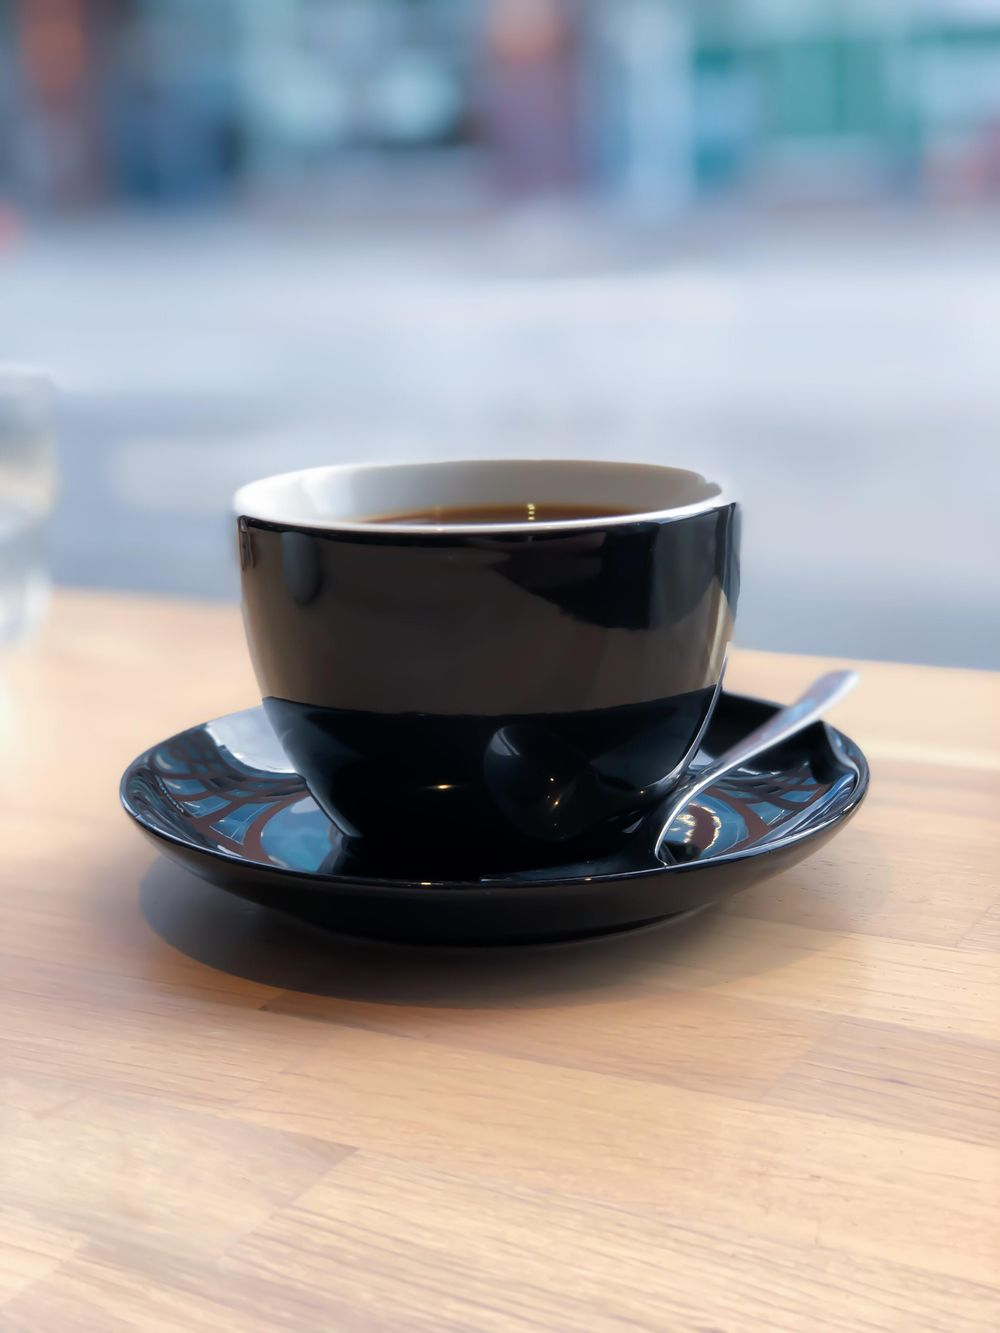 Afternoon Coffee - image 2 - student project